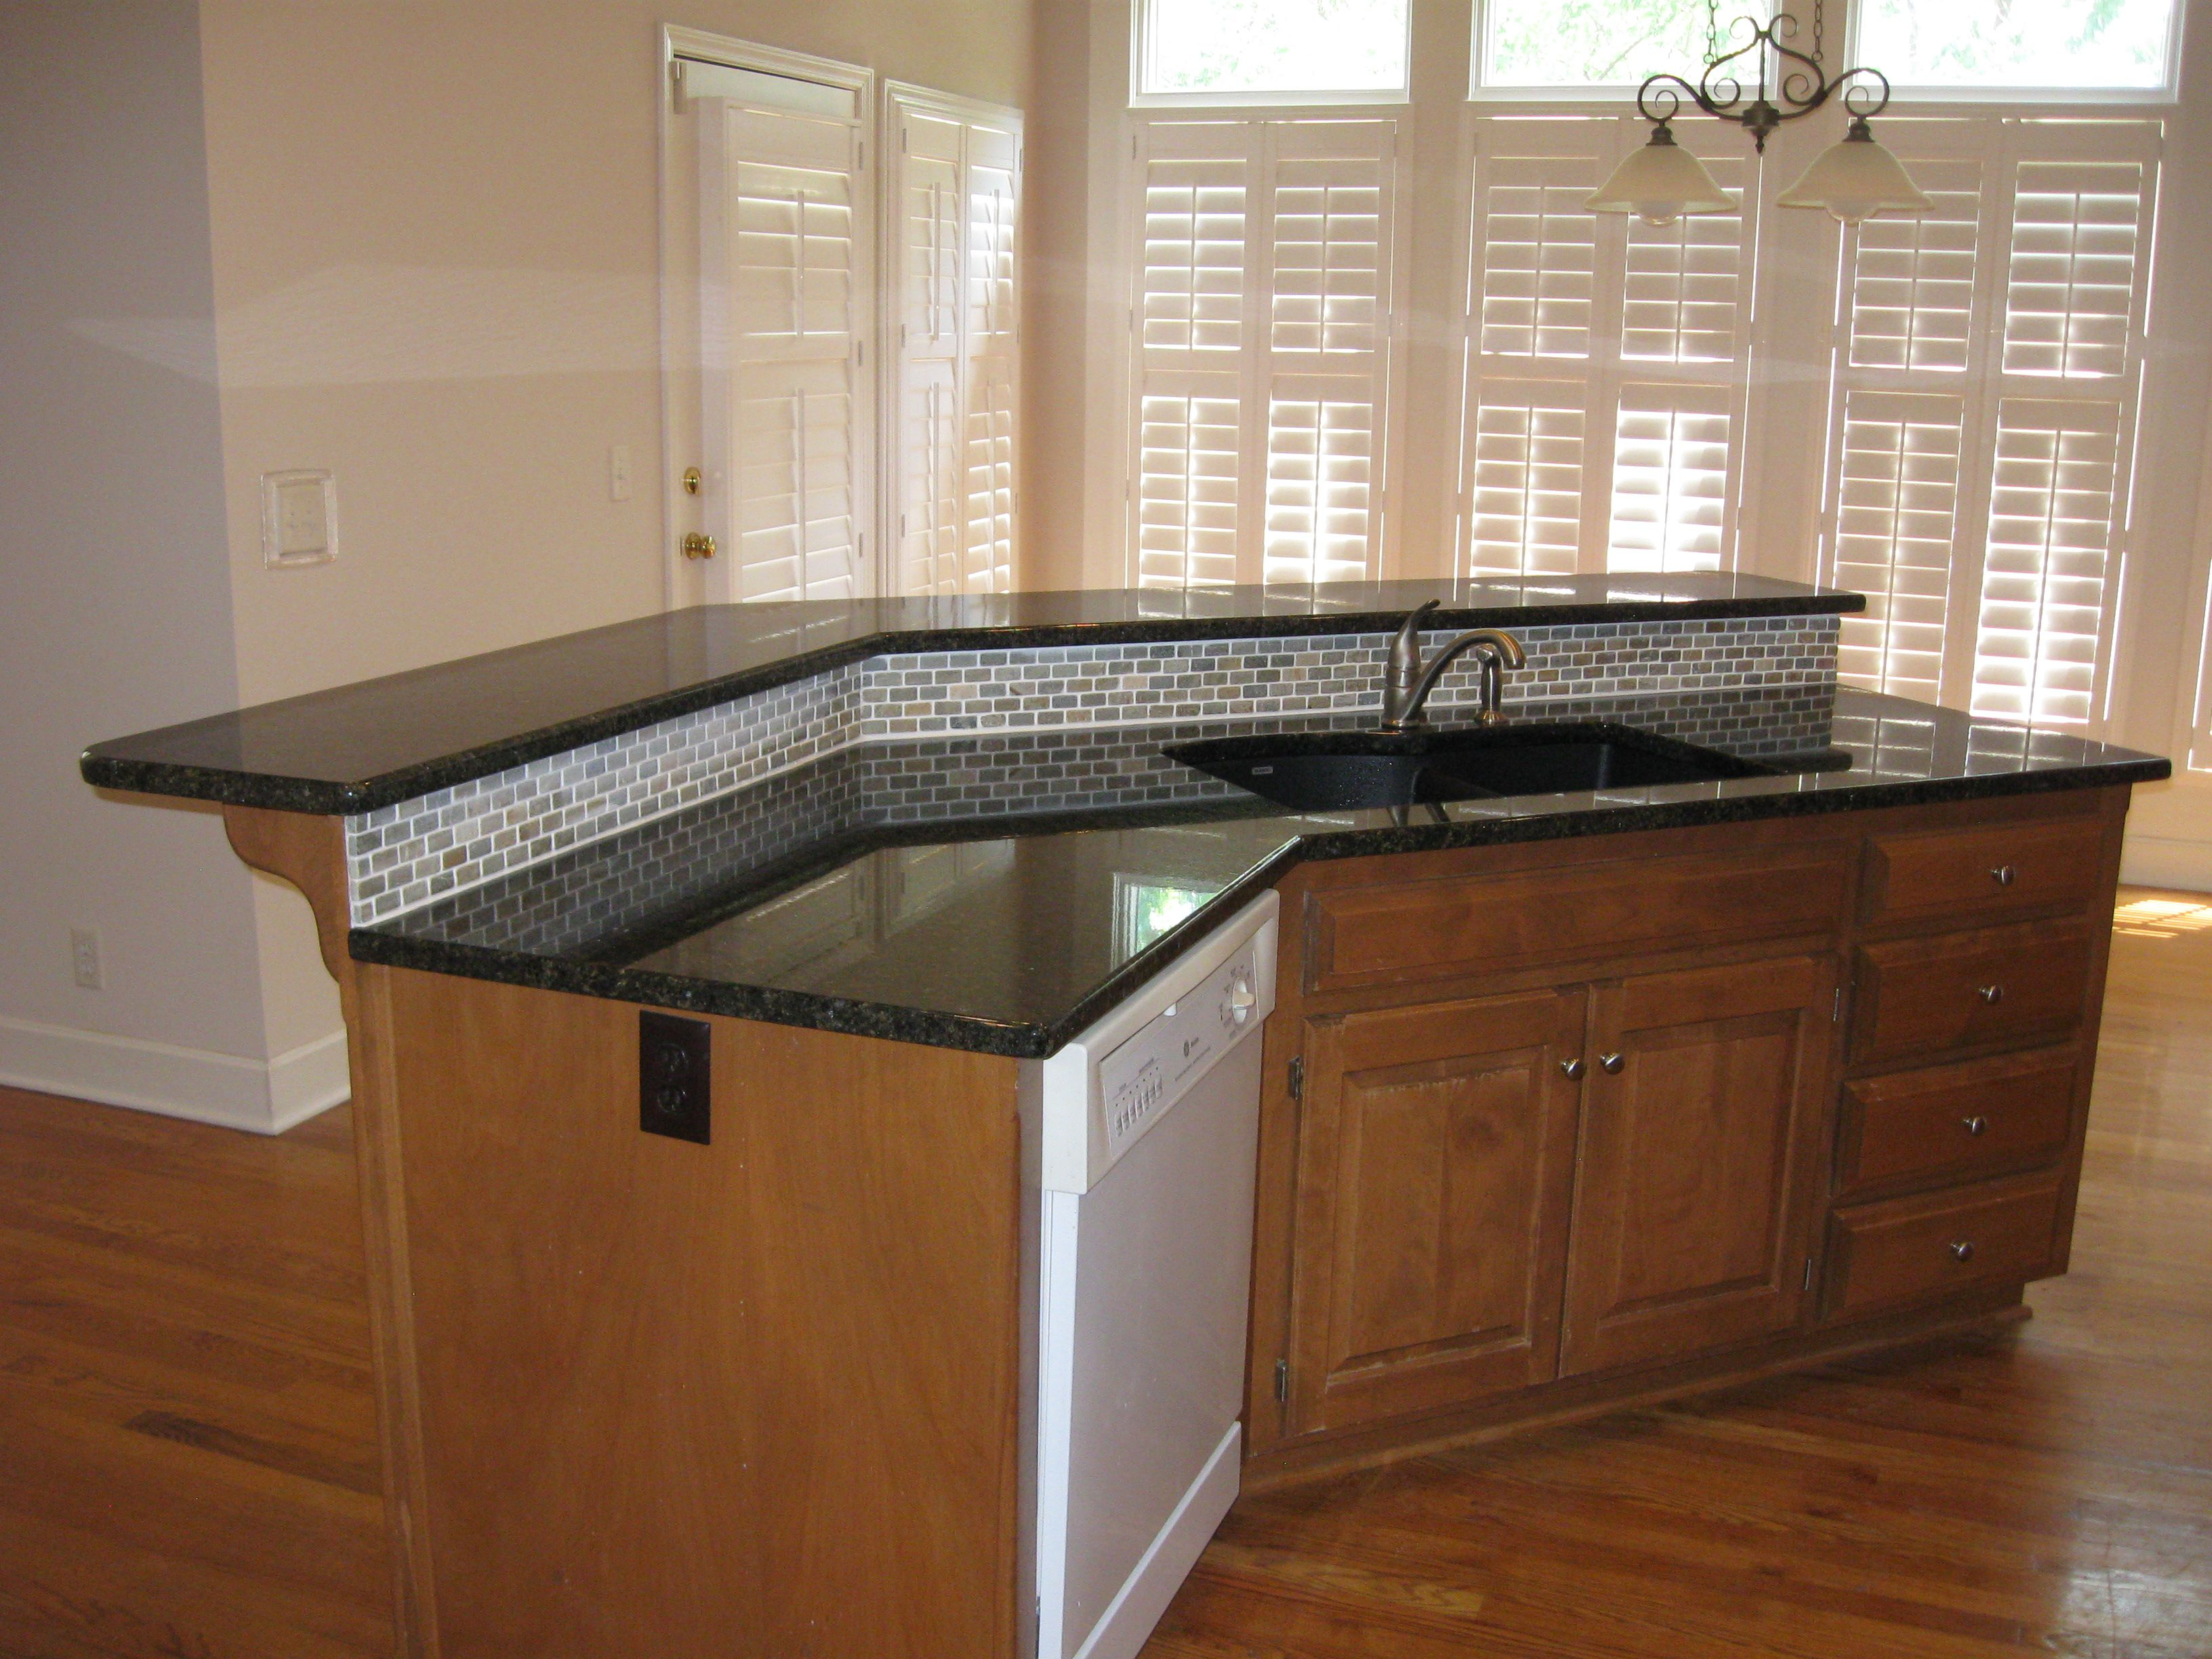 Kitchen Island With Sink And Bar how to extend countertop for bar - yahoo image search results